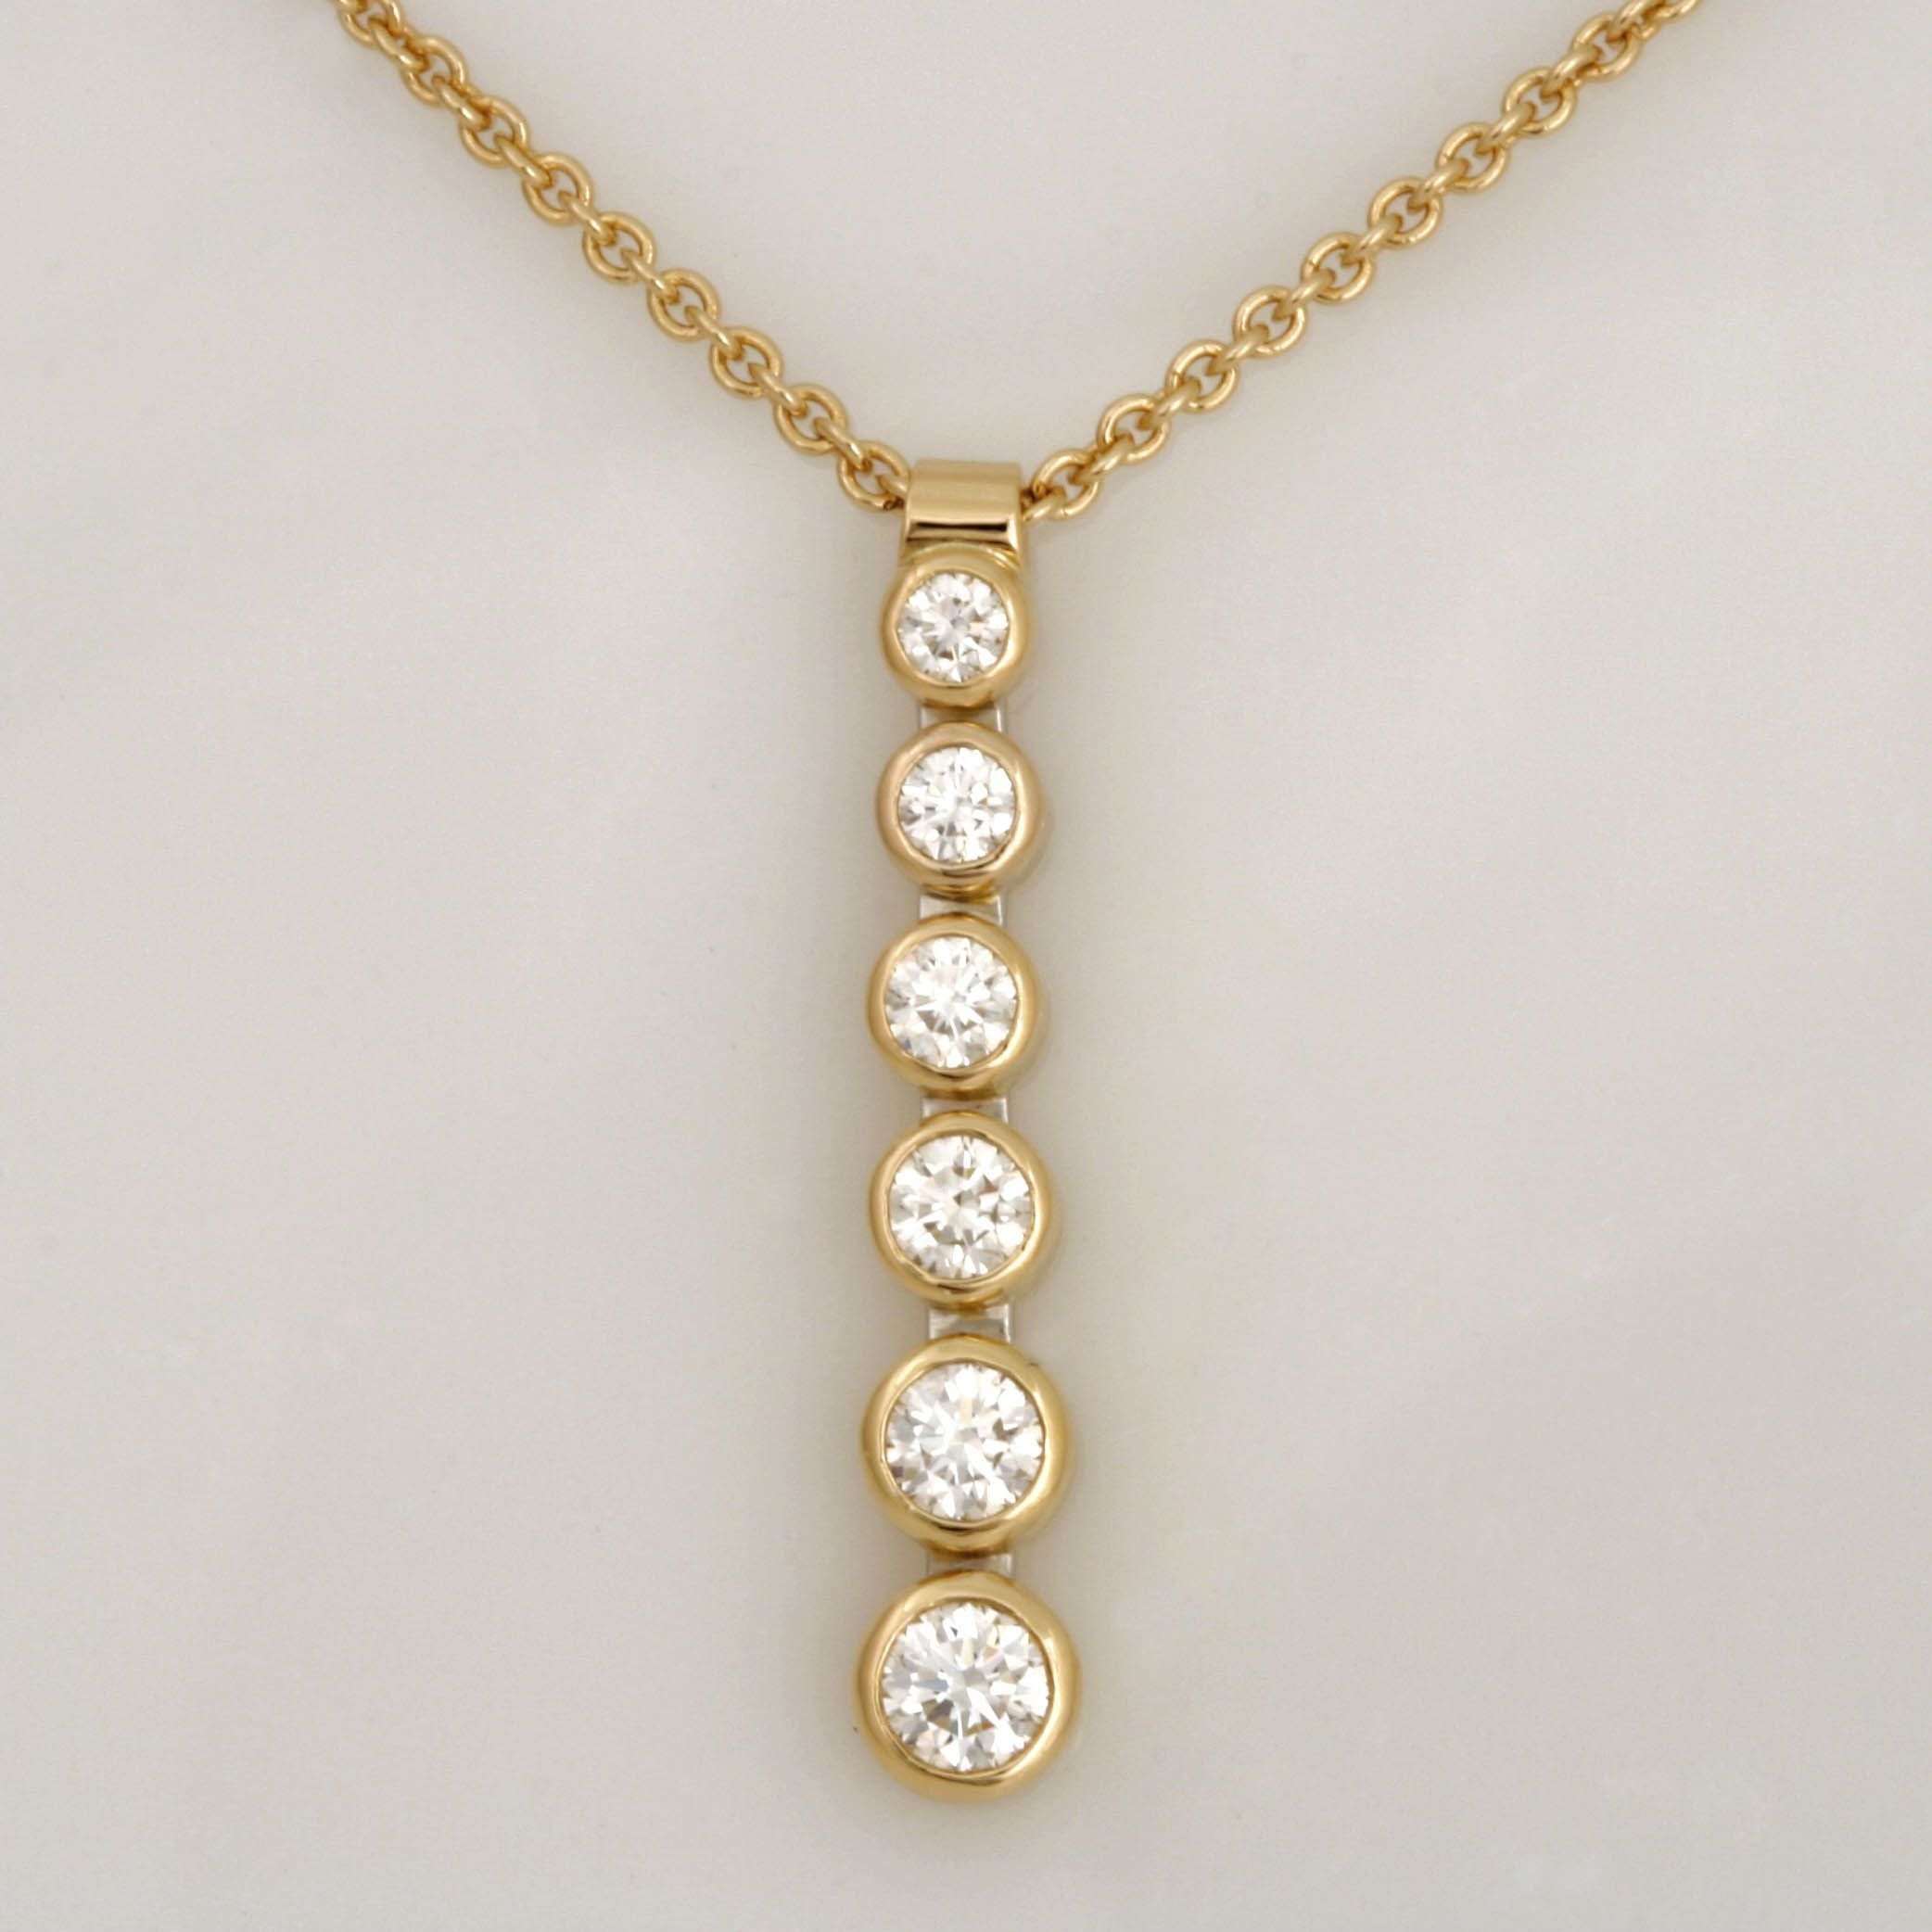 city grtjewellers in the gold necklace designed of diamond pendant exclusively platinum stone dubai necklaces